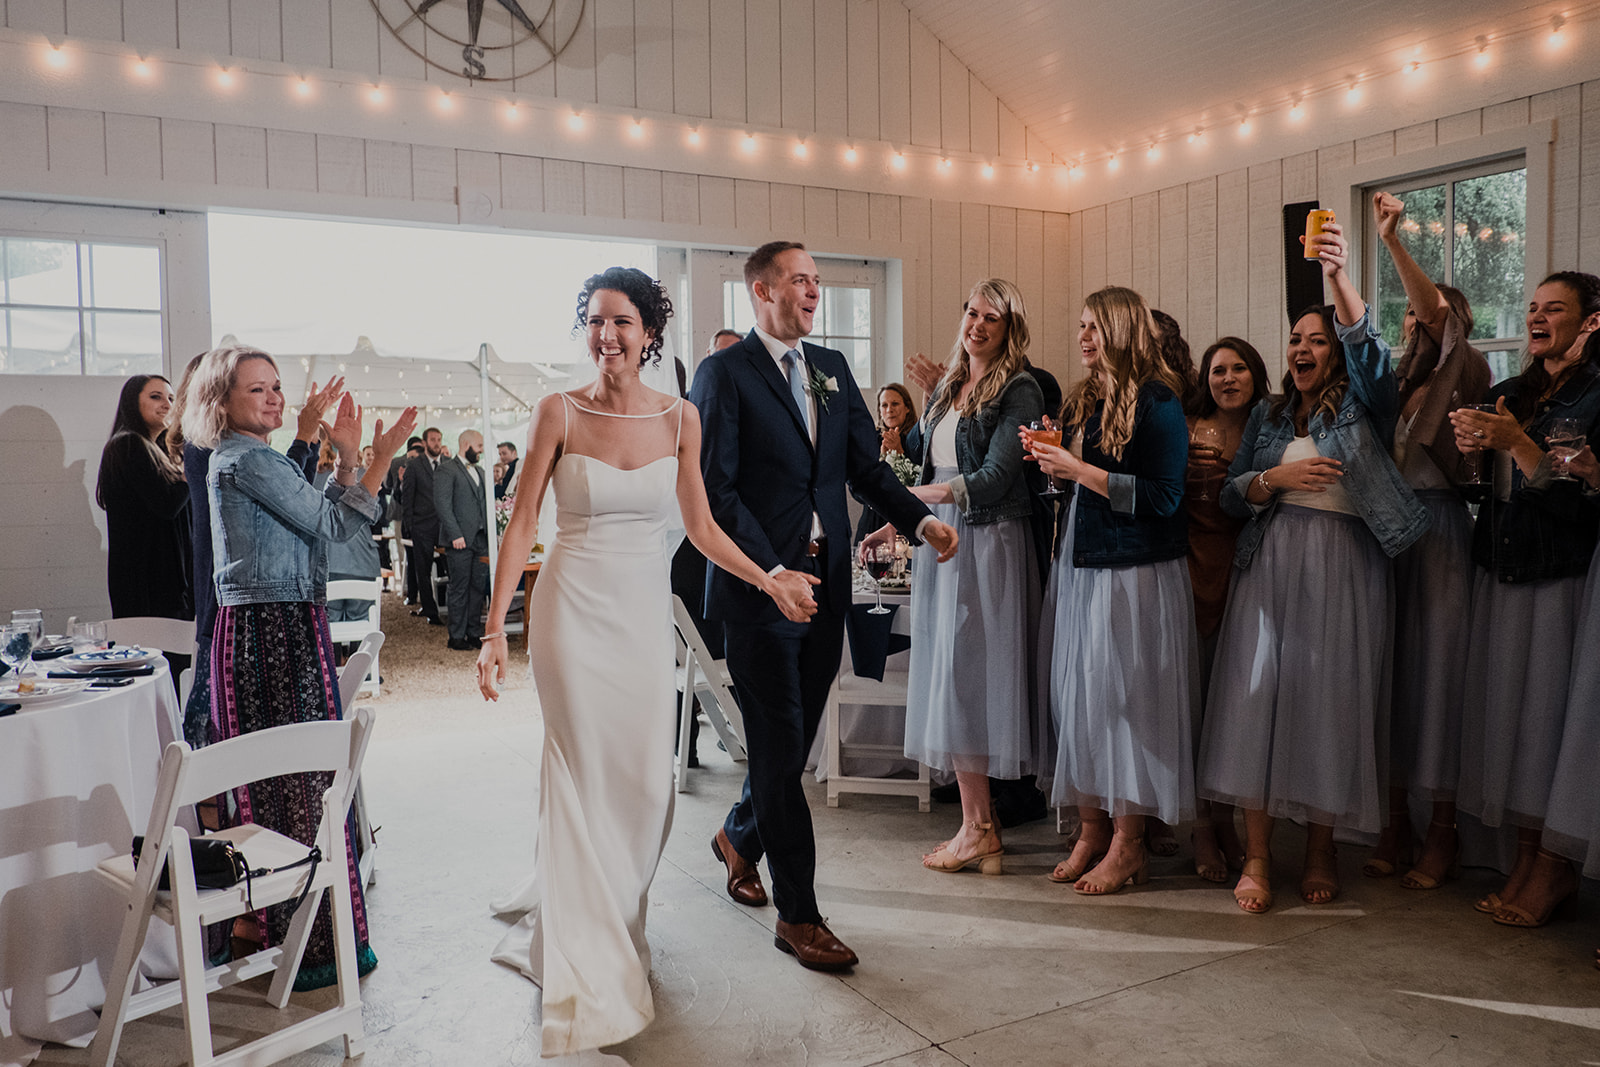 A bride and groom are applauded by guests as they walk into their wedding reception at Blue Hill Farm in Waterford, VA